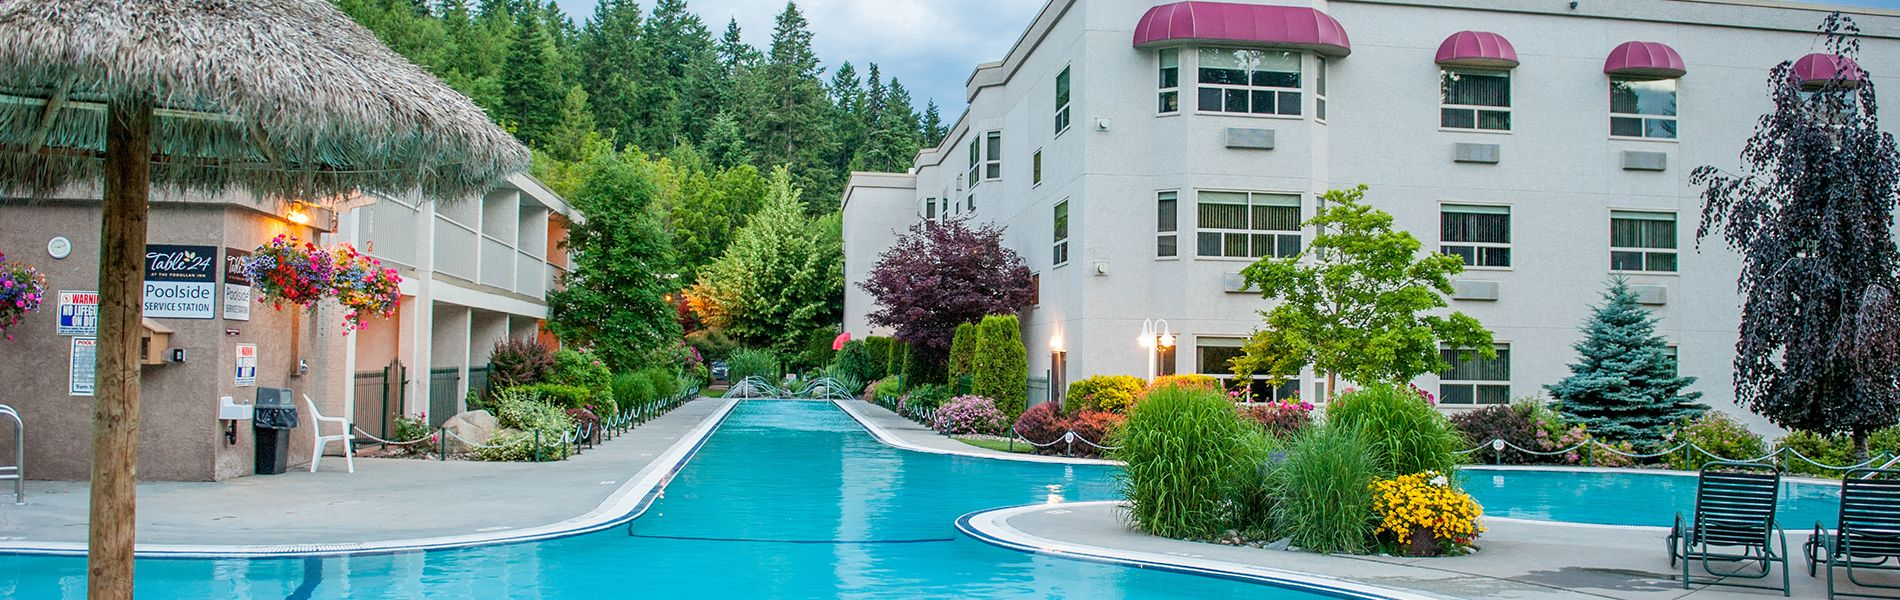 Hotels In Salmon Arm Bc